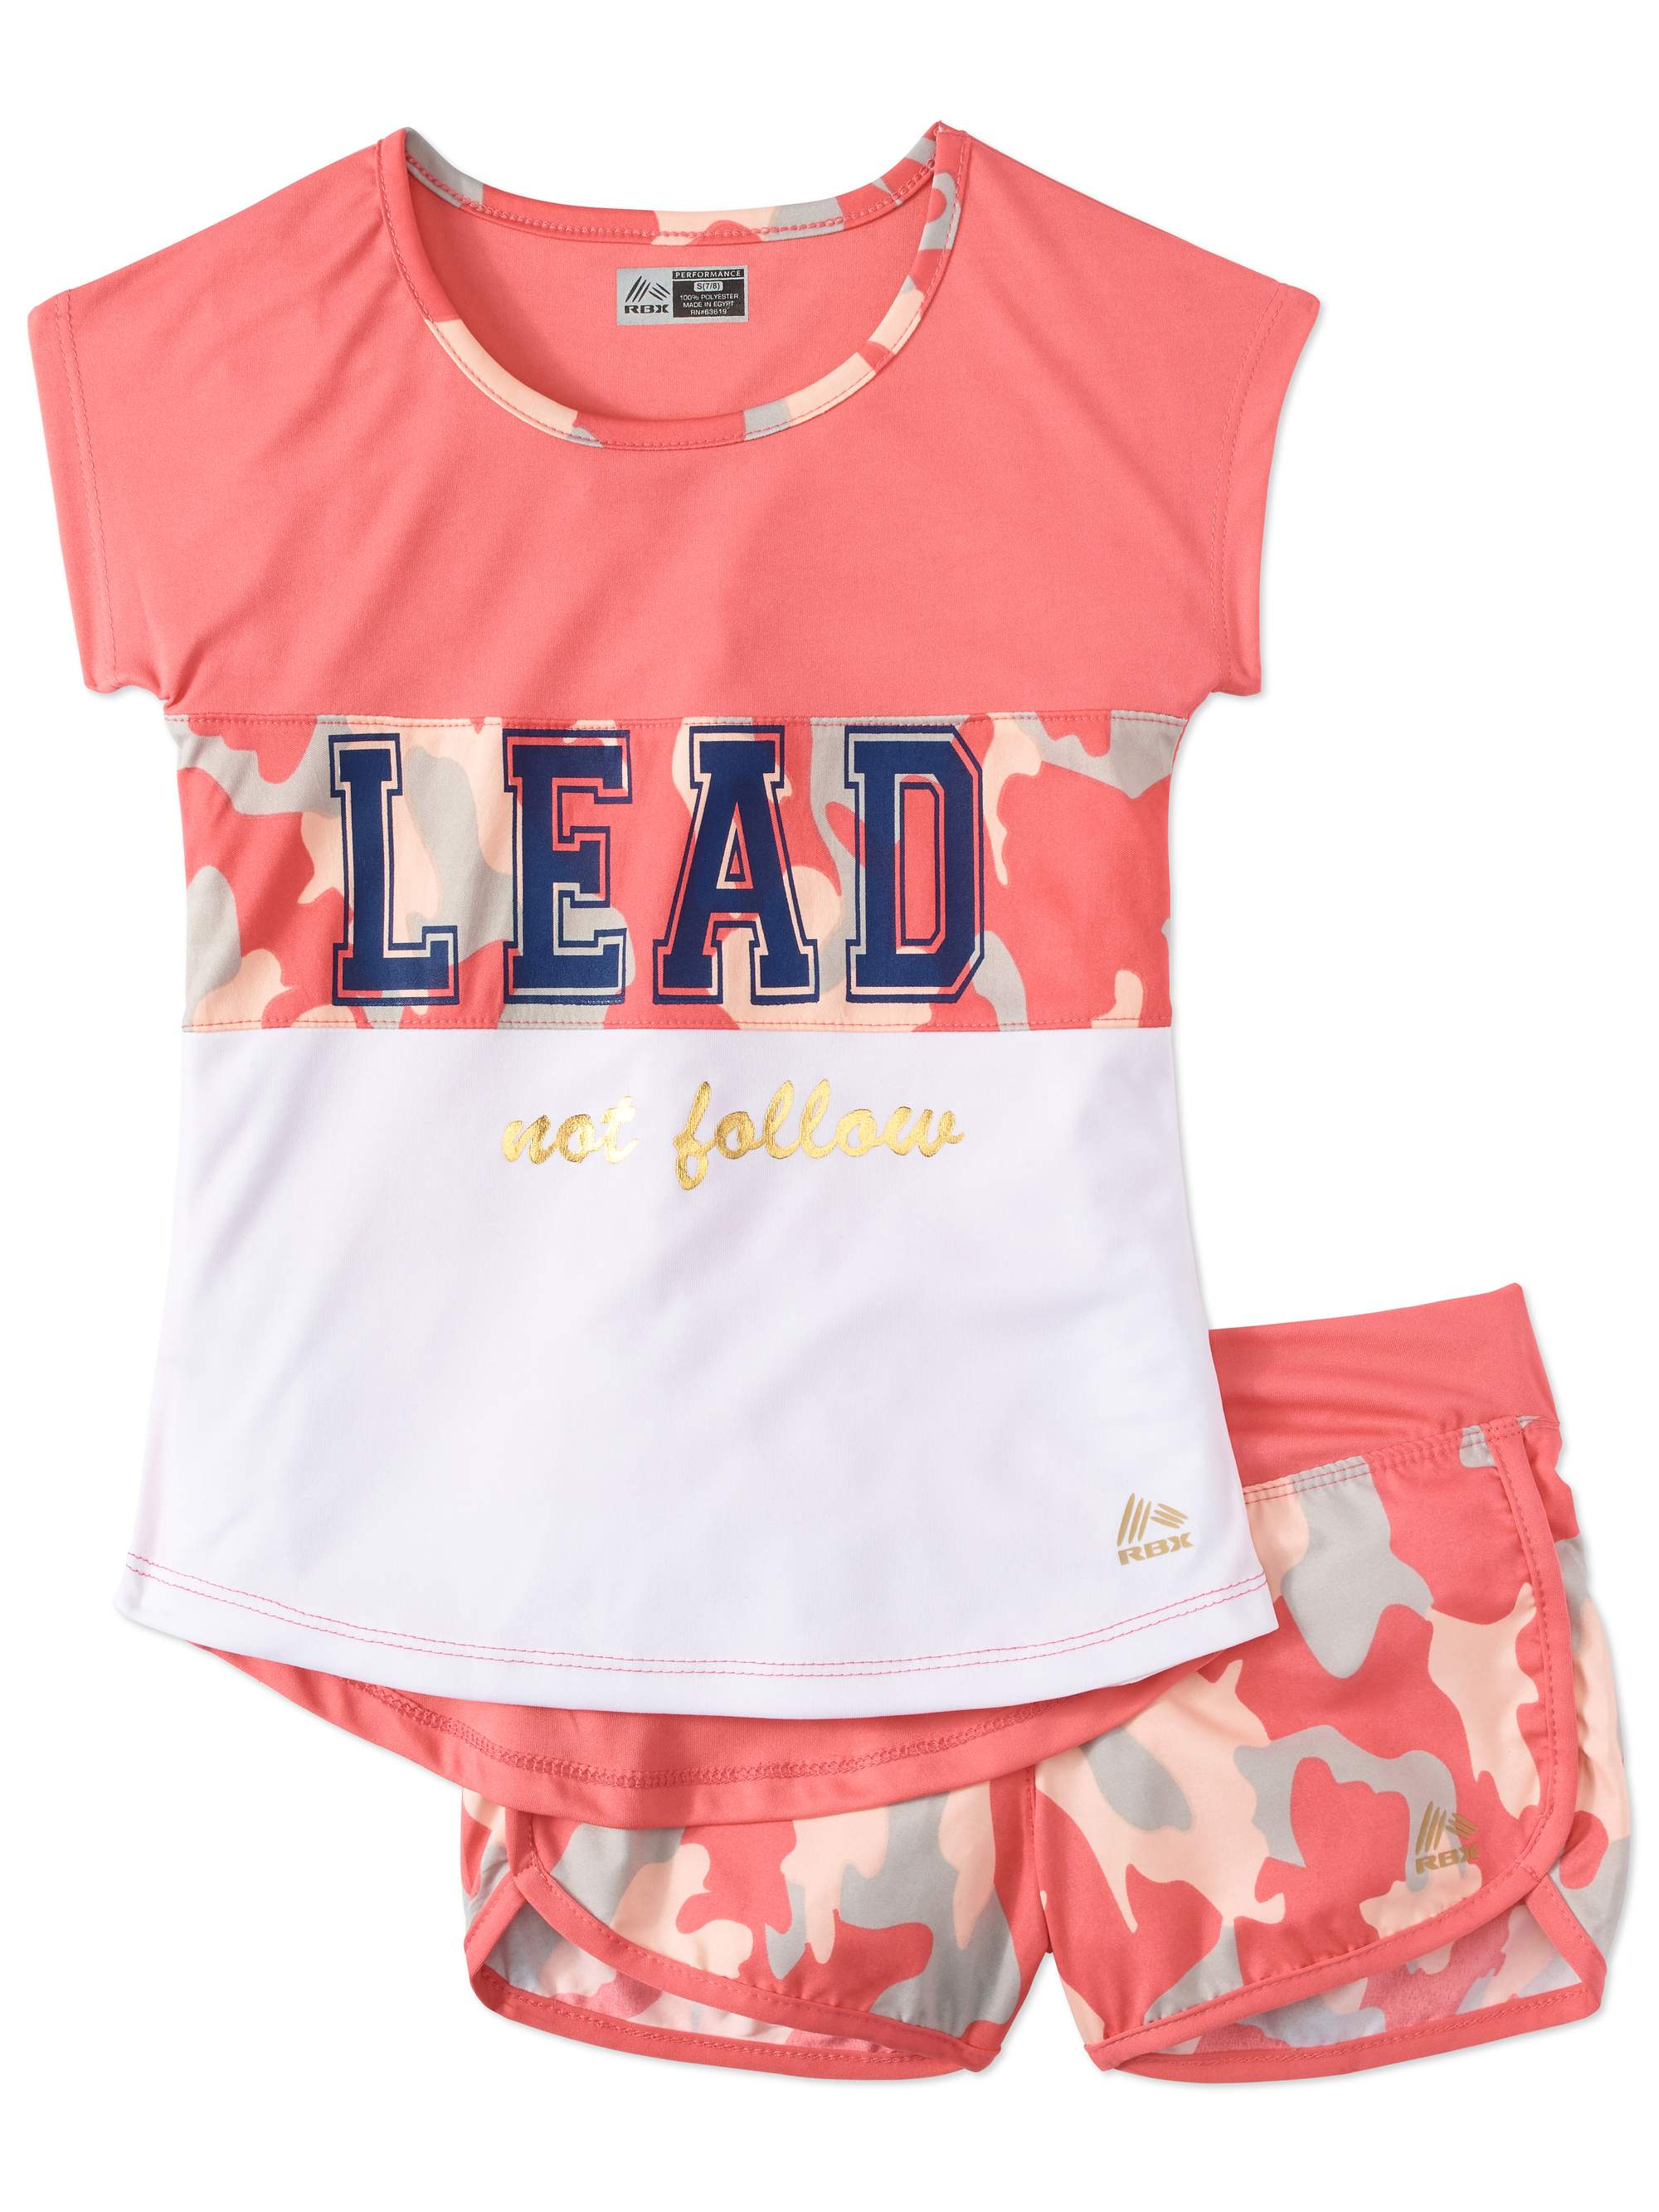 Girls' Graphic Tee and Running Short 2-Piece Active Set